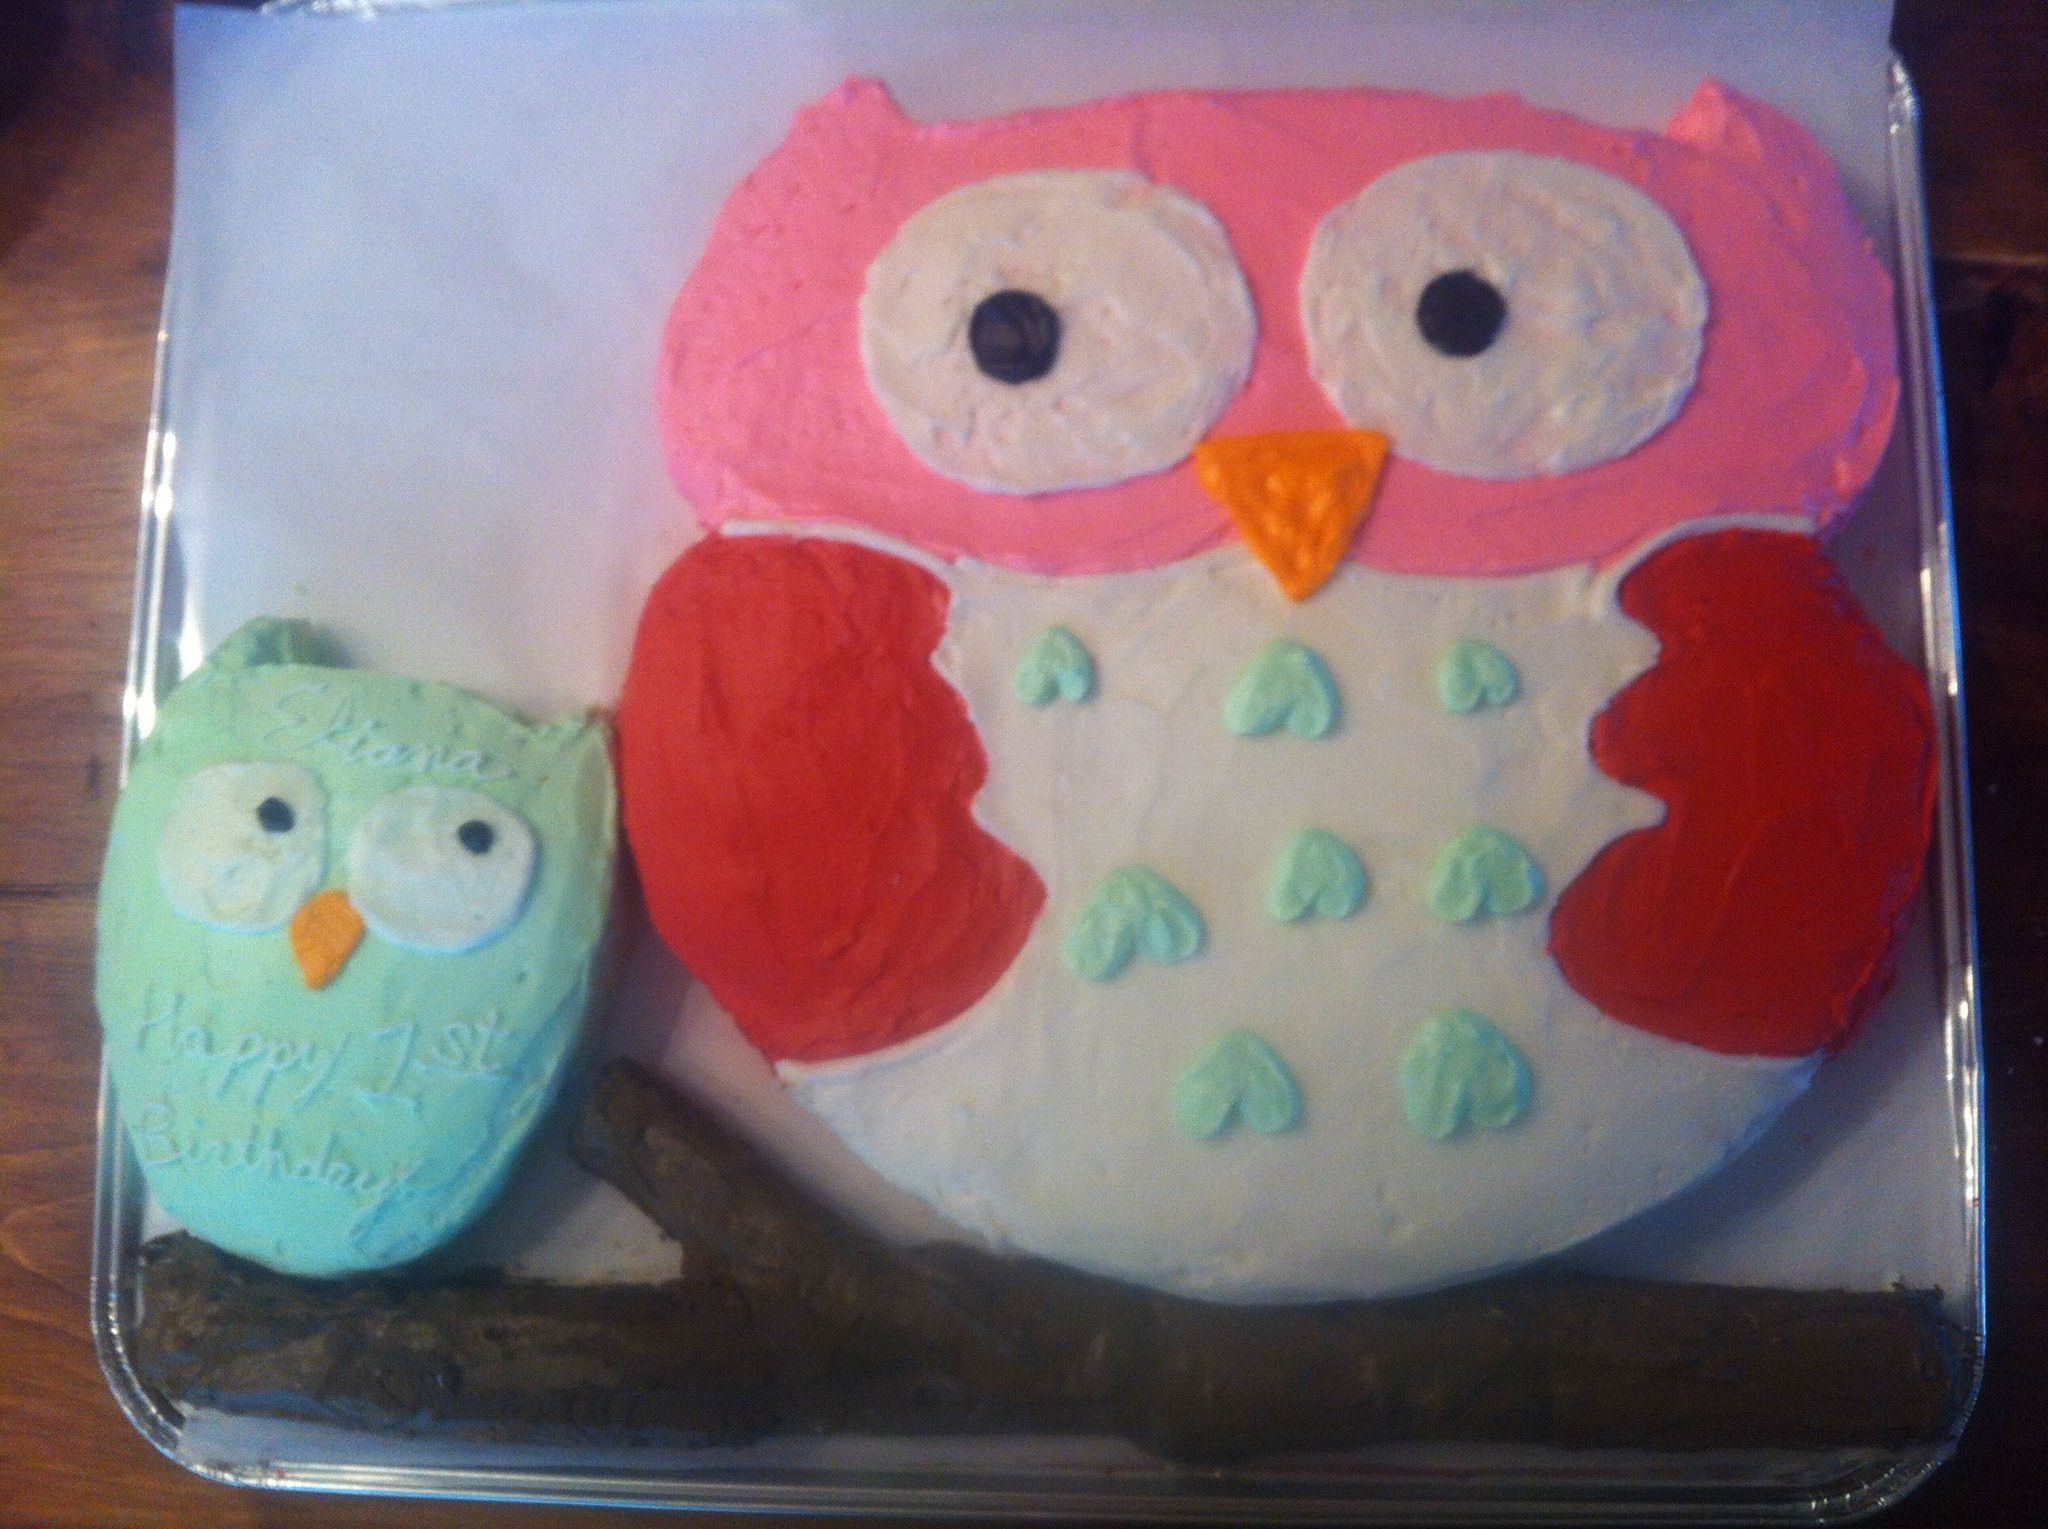 Babys First Birthday Cake The Little Owl Says Happy First Birthday